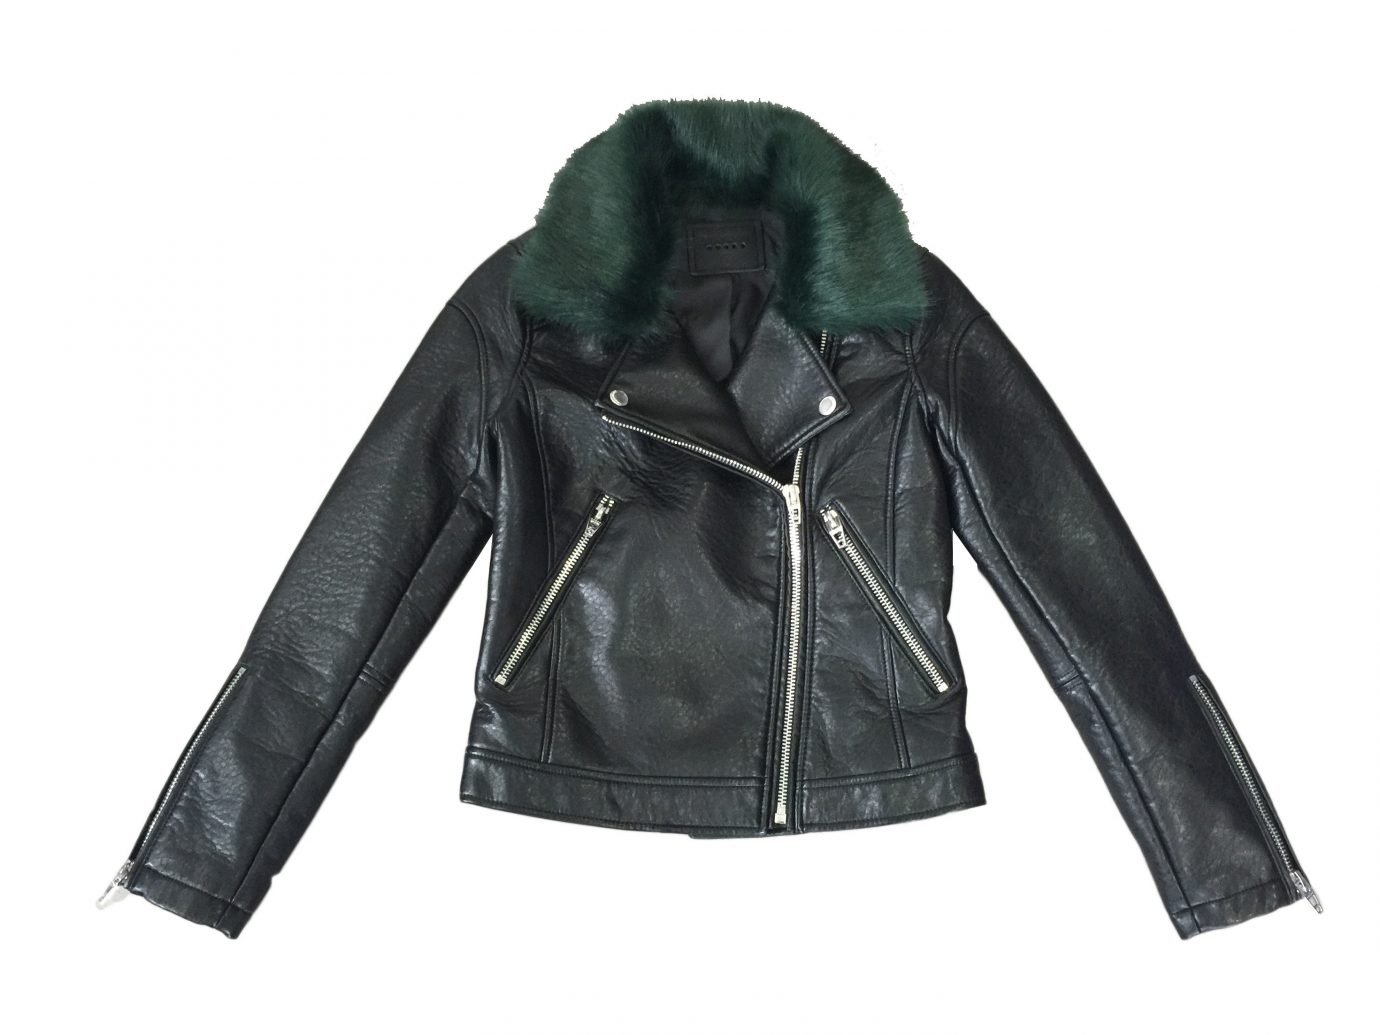 Style + Design jacket clothing leather jacket leather textile outerwear material coat